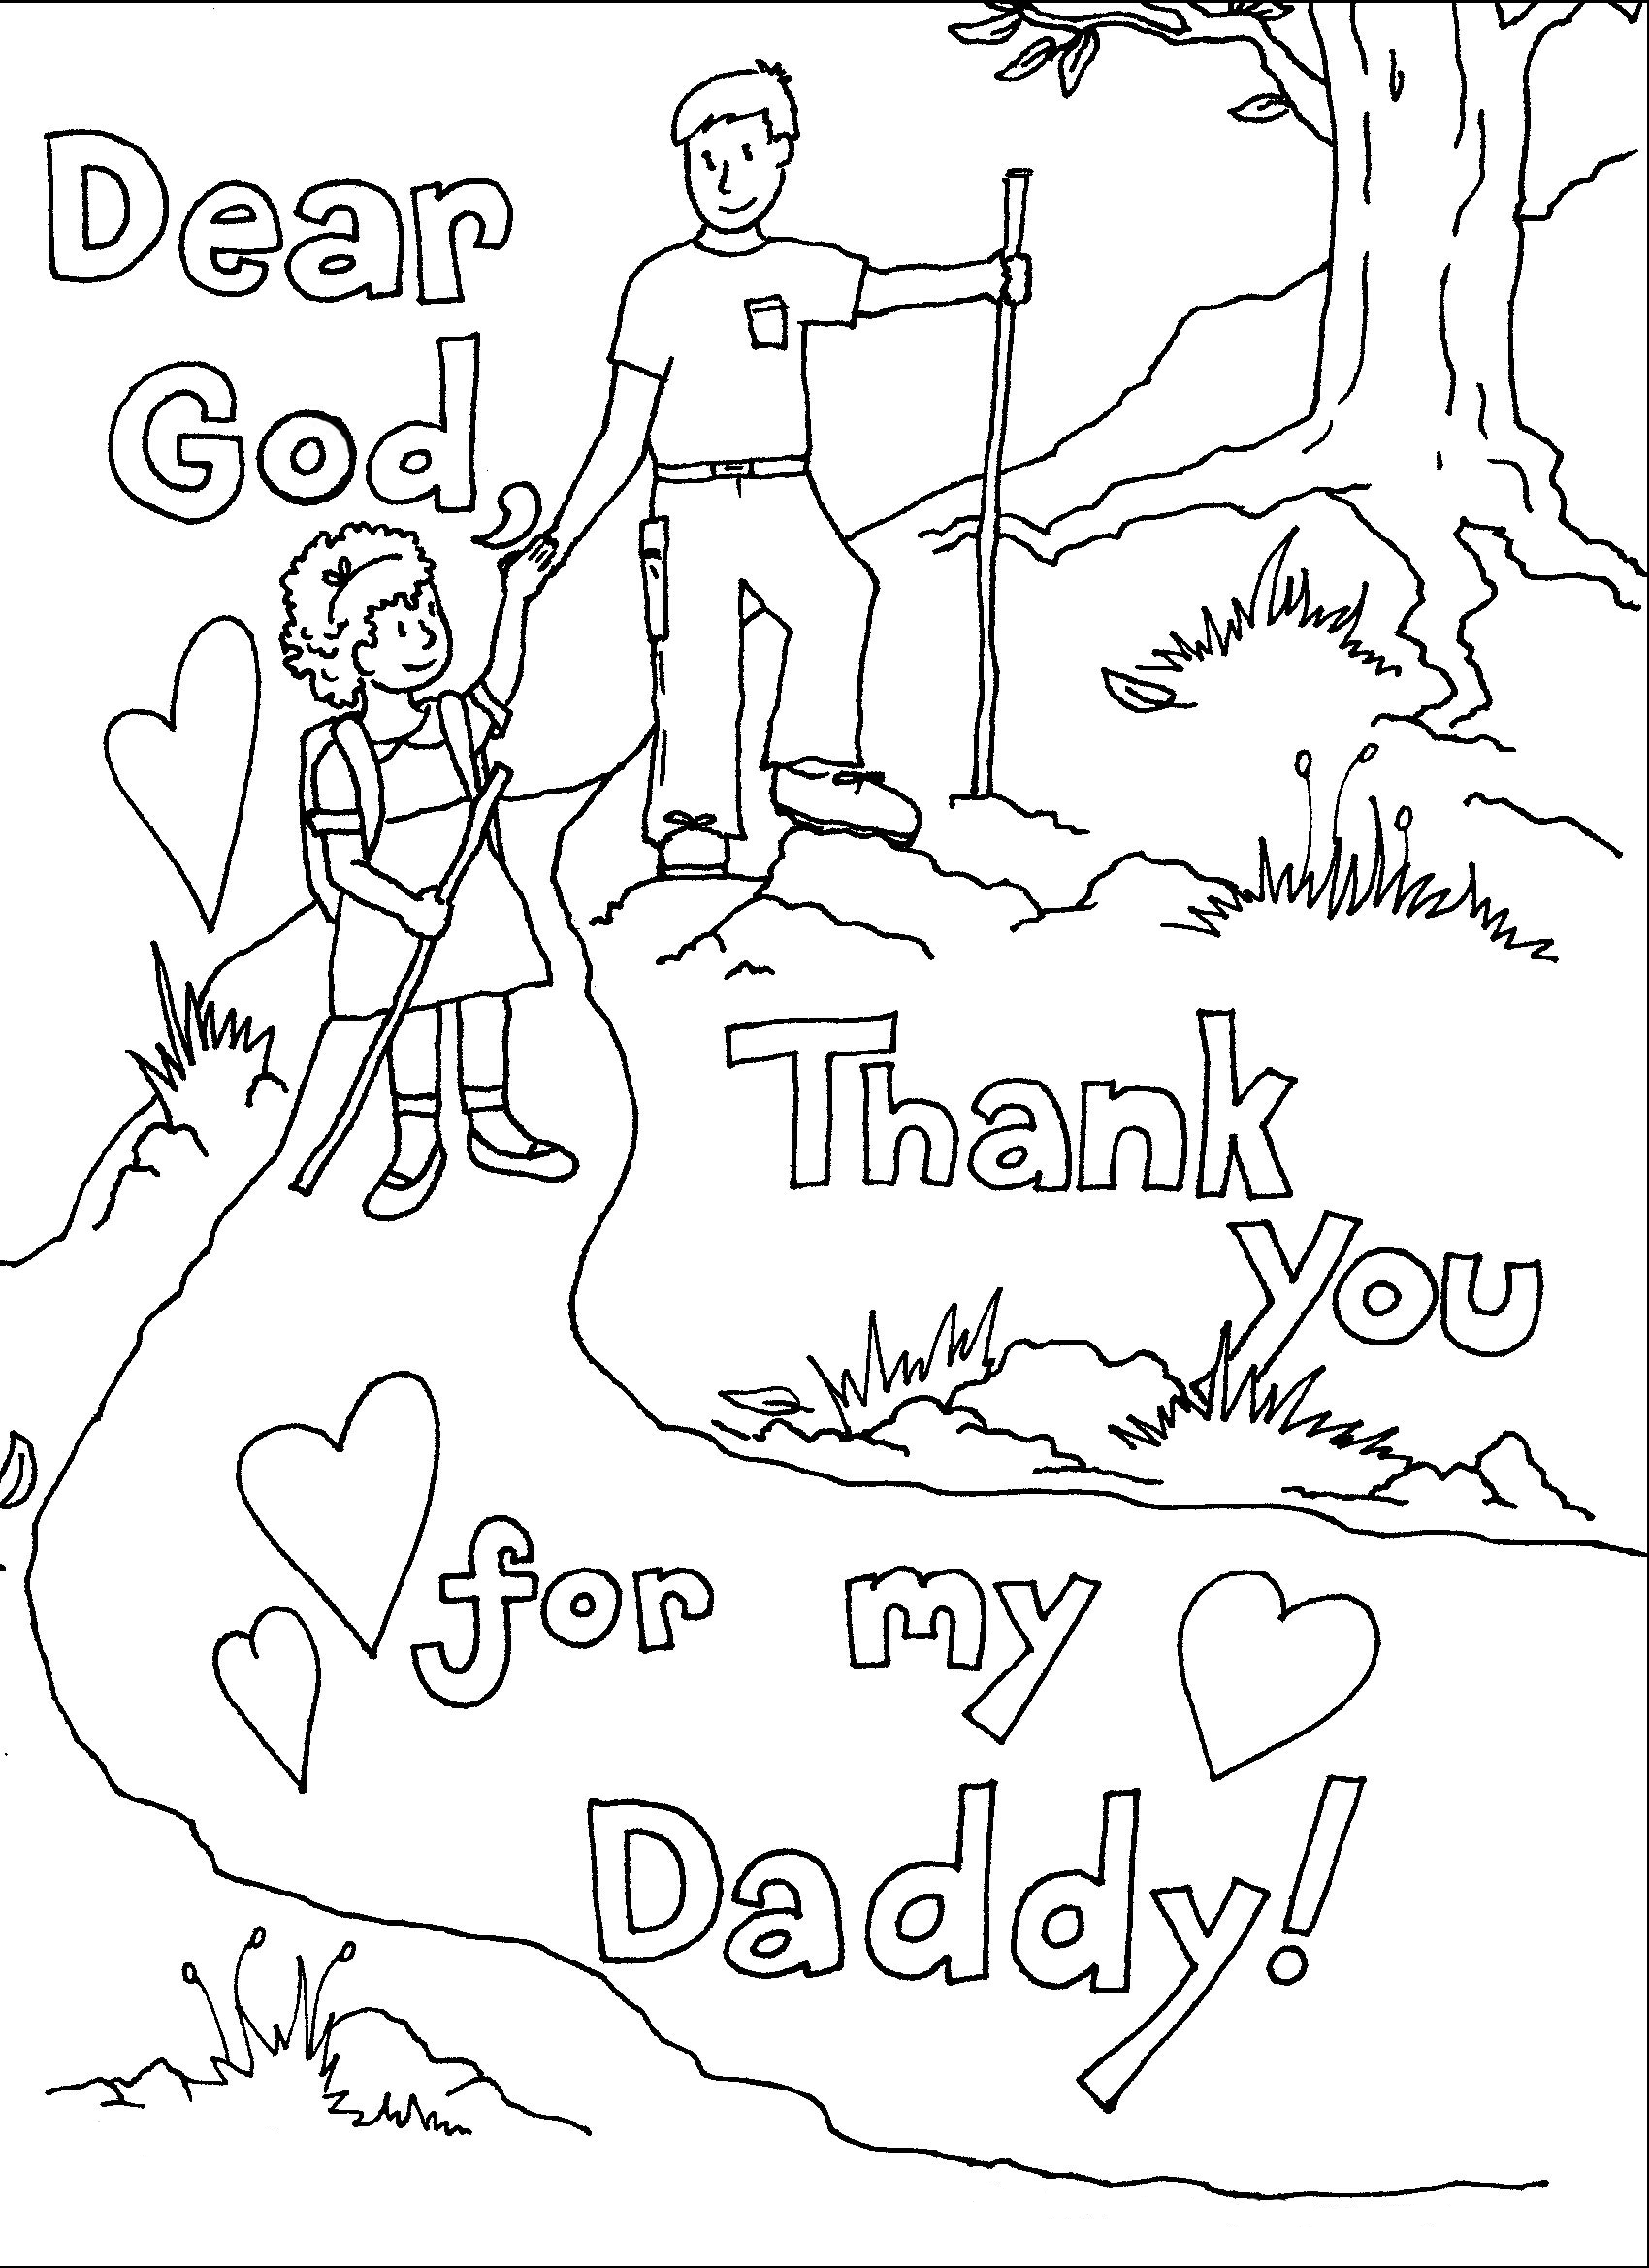 Fathers Day Coloring Pages | Preschool | Pinterest | Father ...